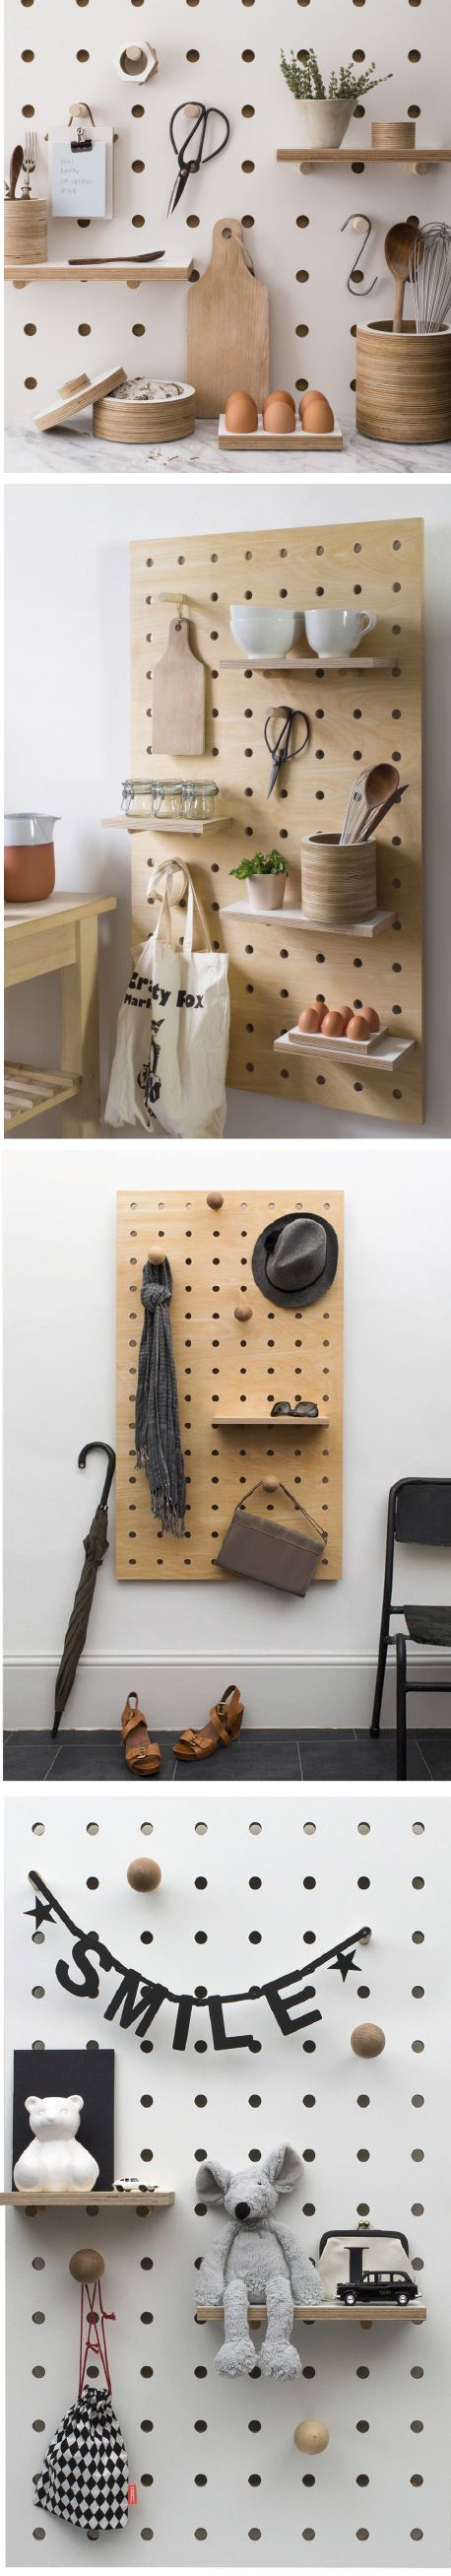 Adjustable Peg Board Shelving